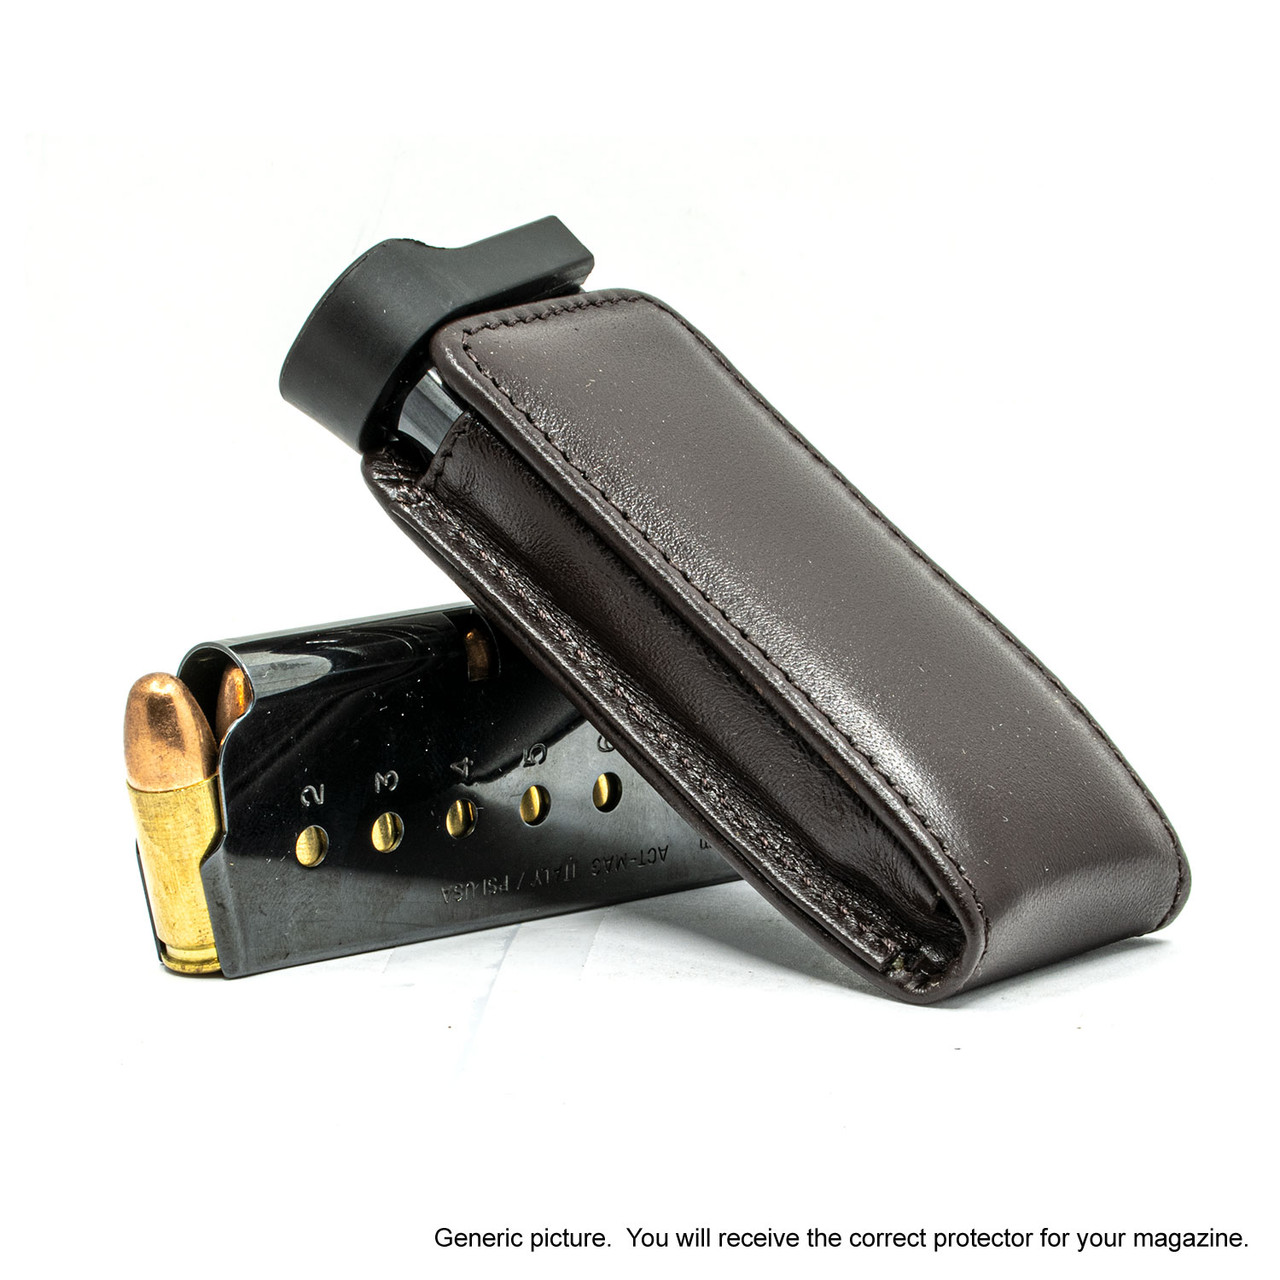 Sig Sauer P250 Compact Brown Leather Magazine Pocket Protector